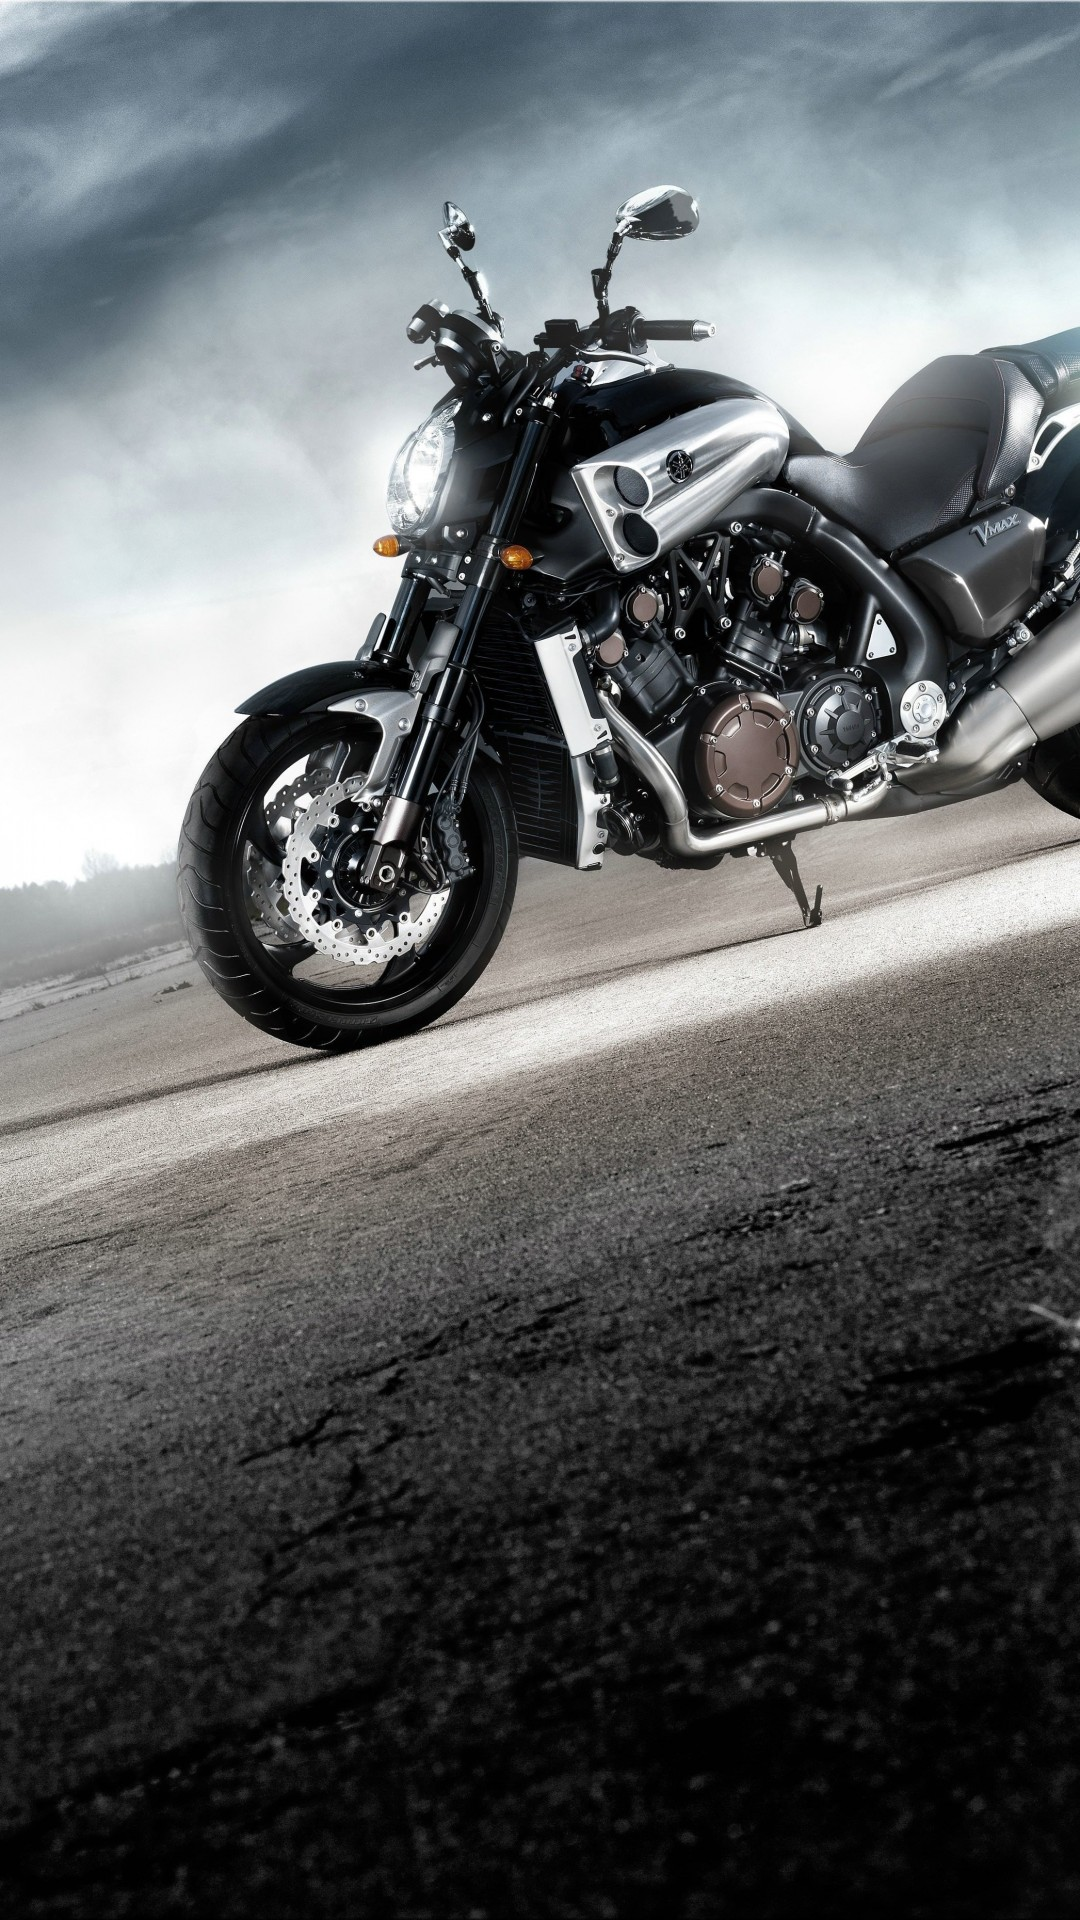 Yamaha VMax Wallpaper for SAMSUNG Galaxy Note 3